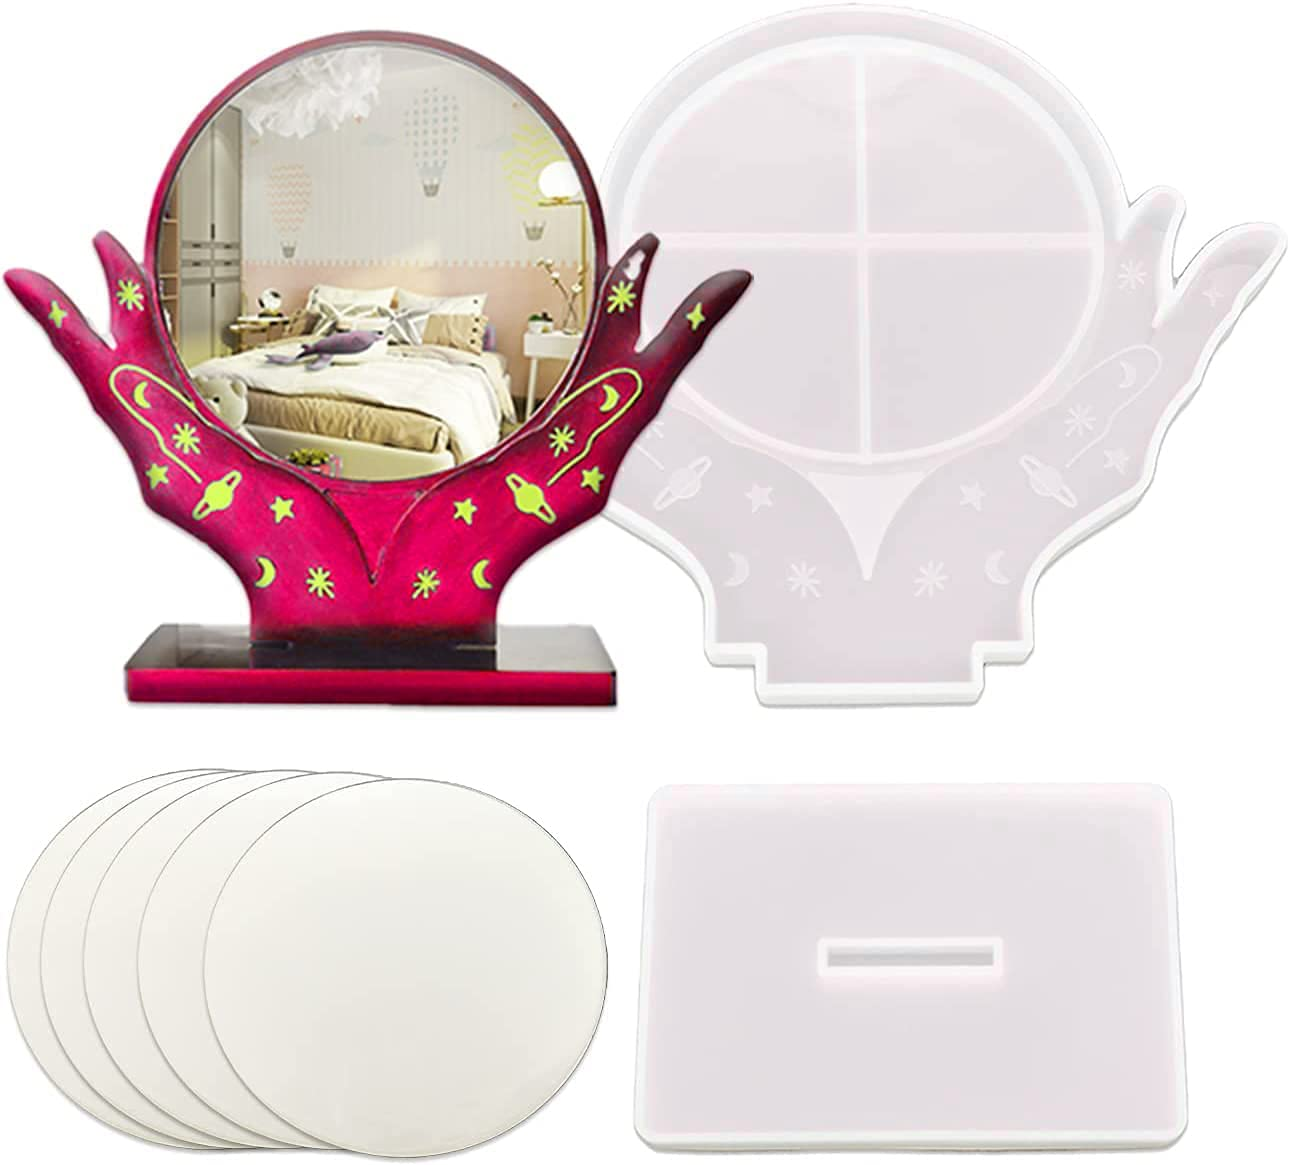 Epoxy Resin Molds for Picture Frame Hand Shaped L Makeup Department store specialty shop Mirror